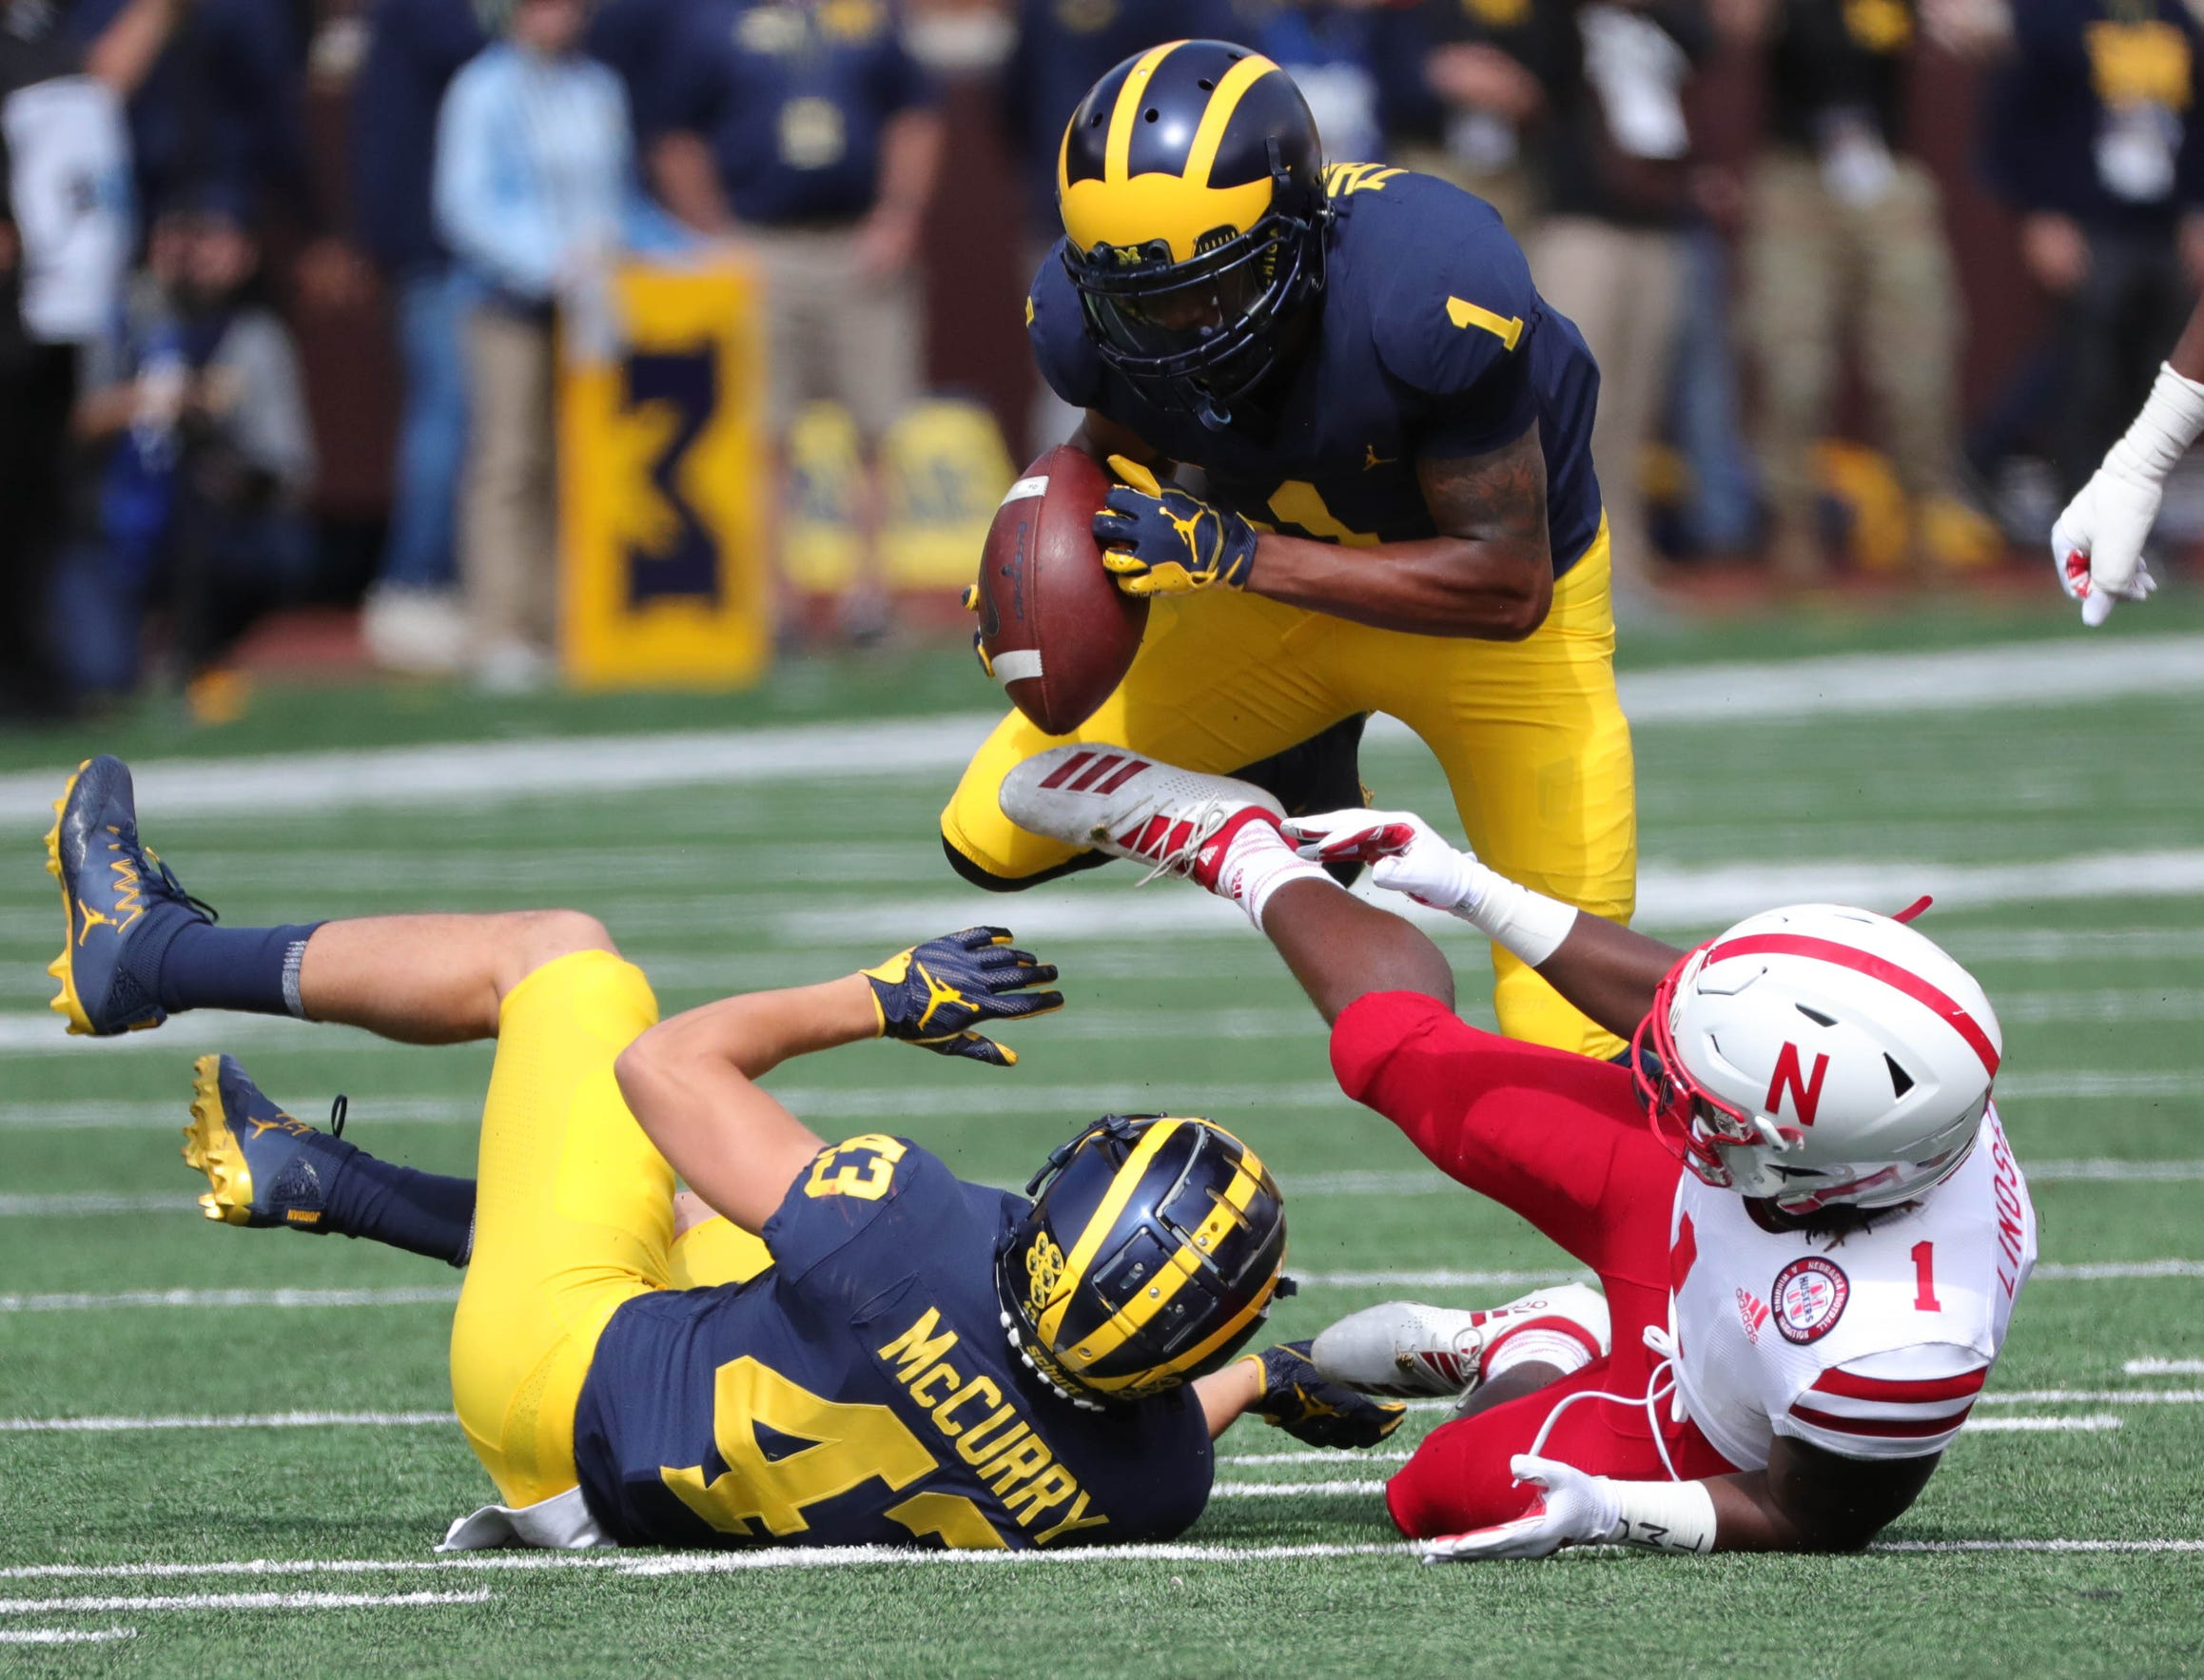 Michigan defensive back Ambry Thomas recovers a fumble against Nebraska.